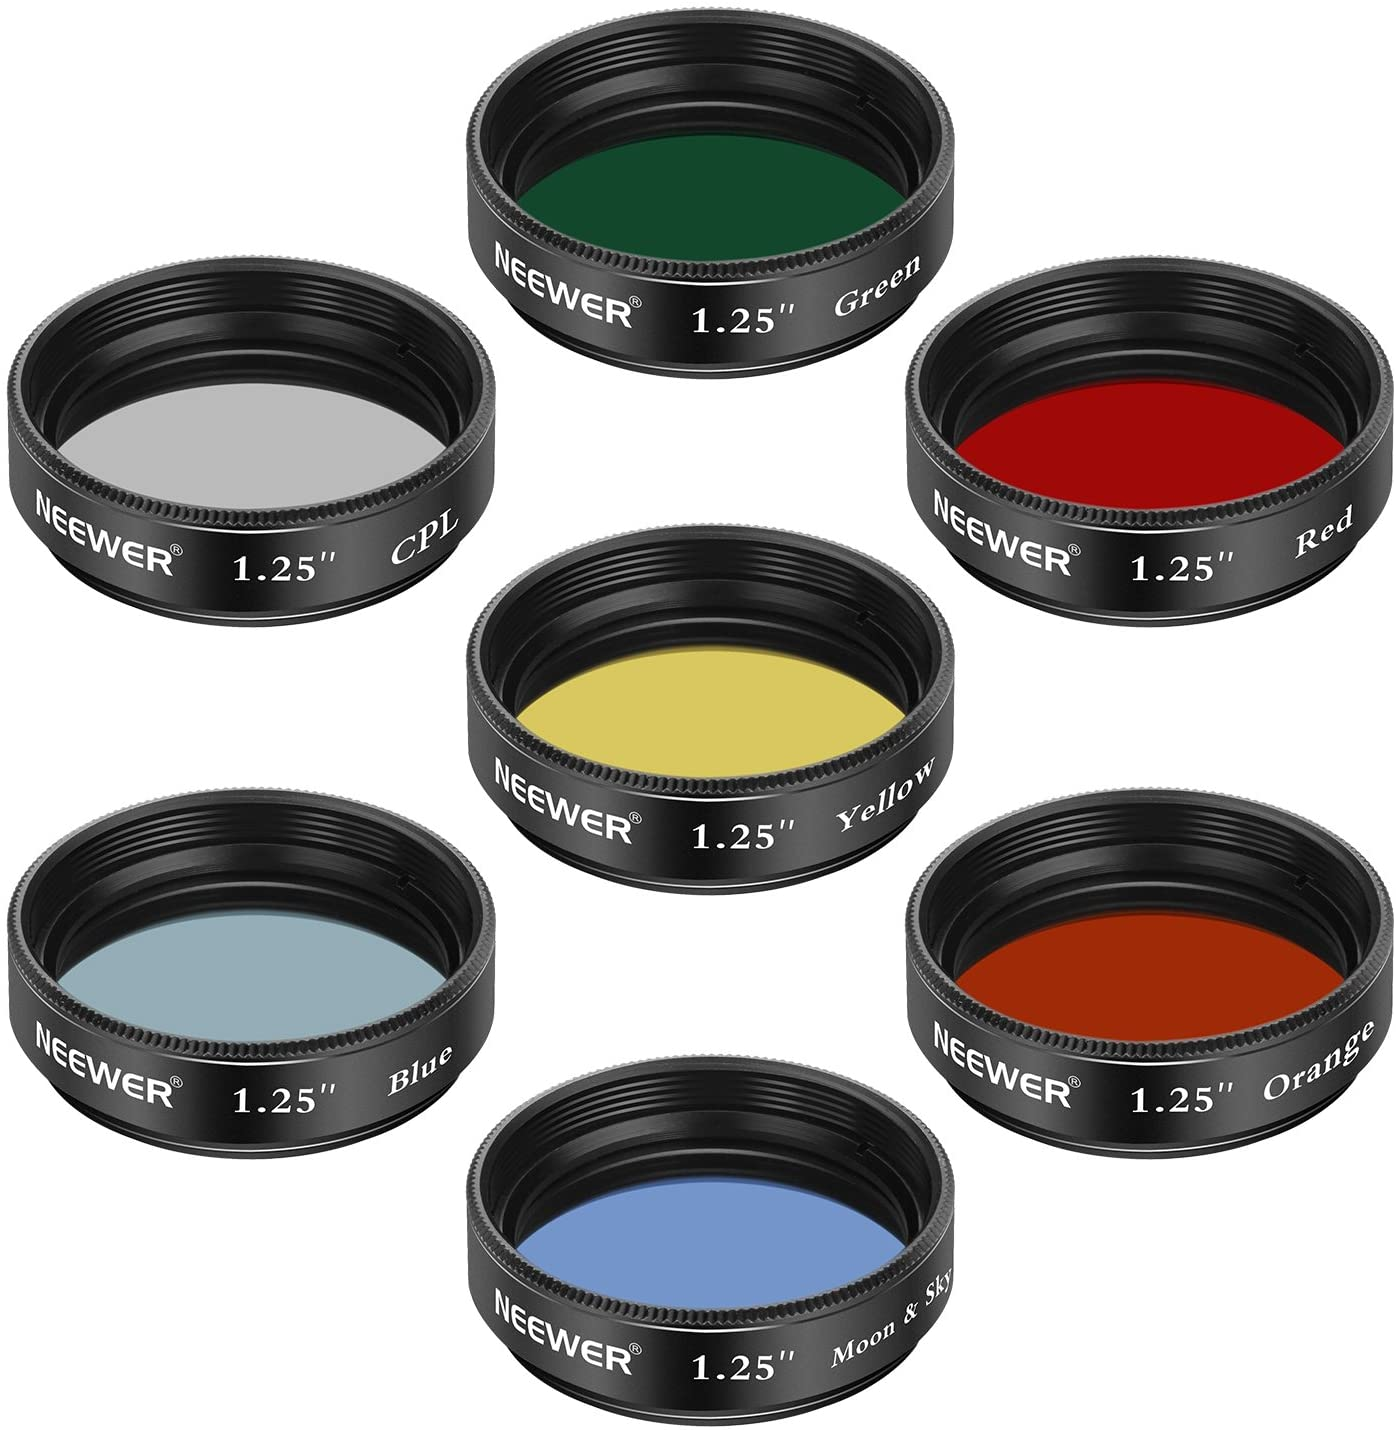 5 Color Filters Set Eyepieces Filters for Enhancing Definition and Resolution in Lunar Planetary Observation CPL Filter Red, Orange, Yellow, Green, Blue Neewer 1.25 inches Telescope Moon Filter